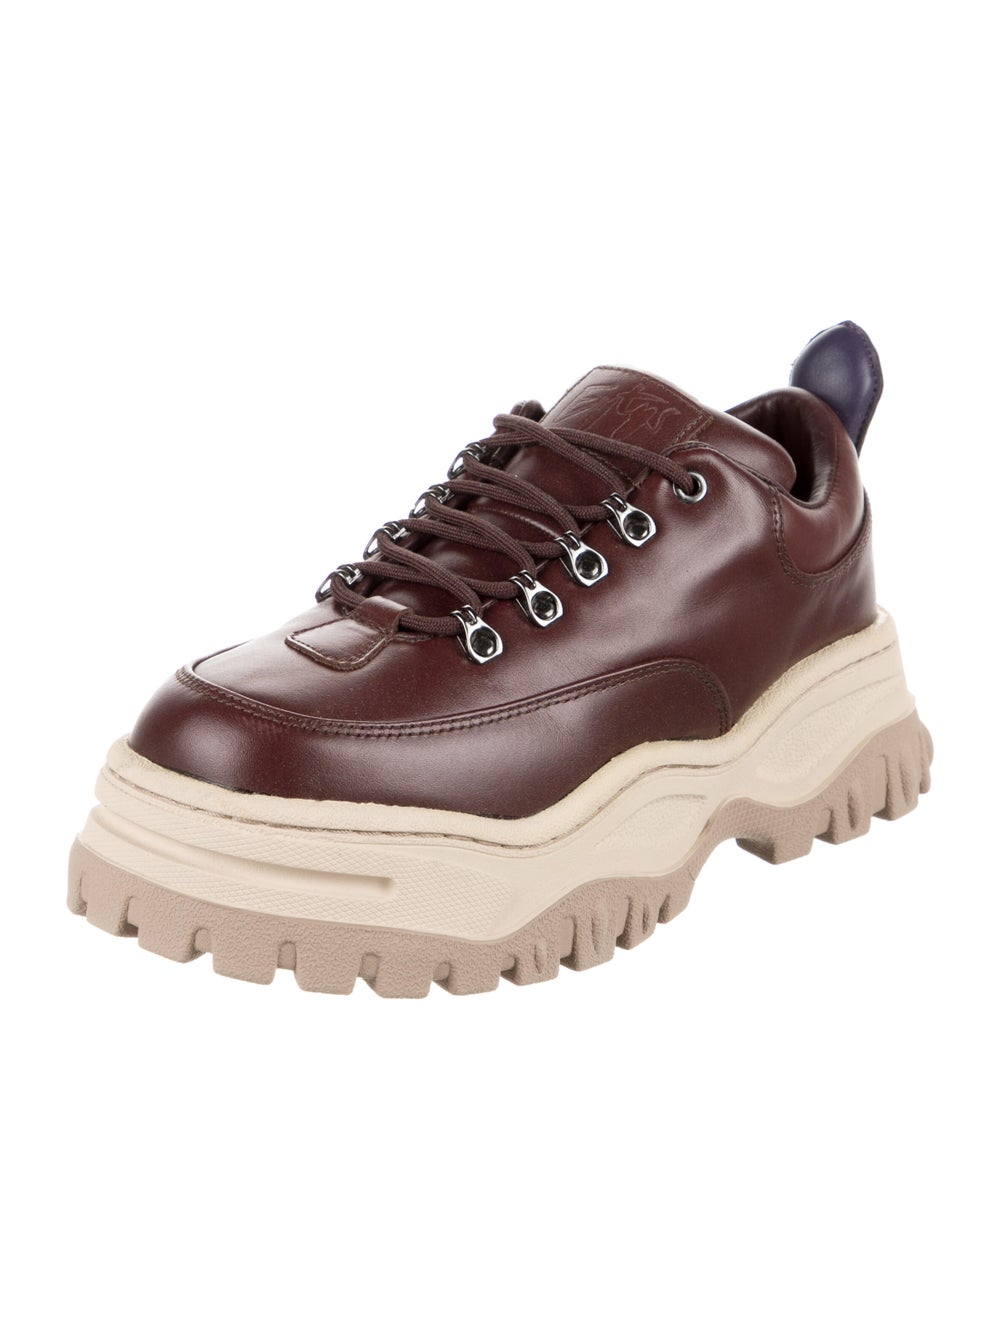 Eytys Leather Chunky Sneakers - image 2